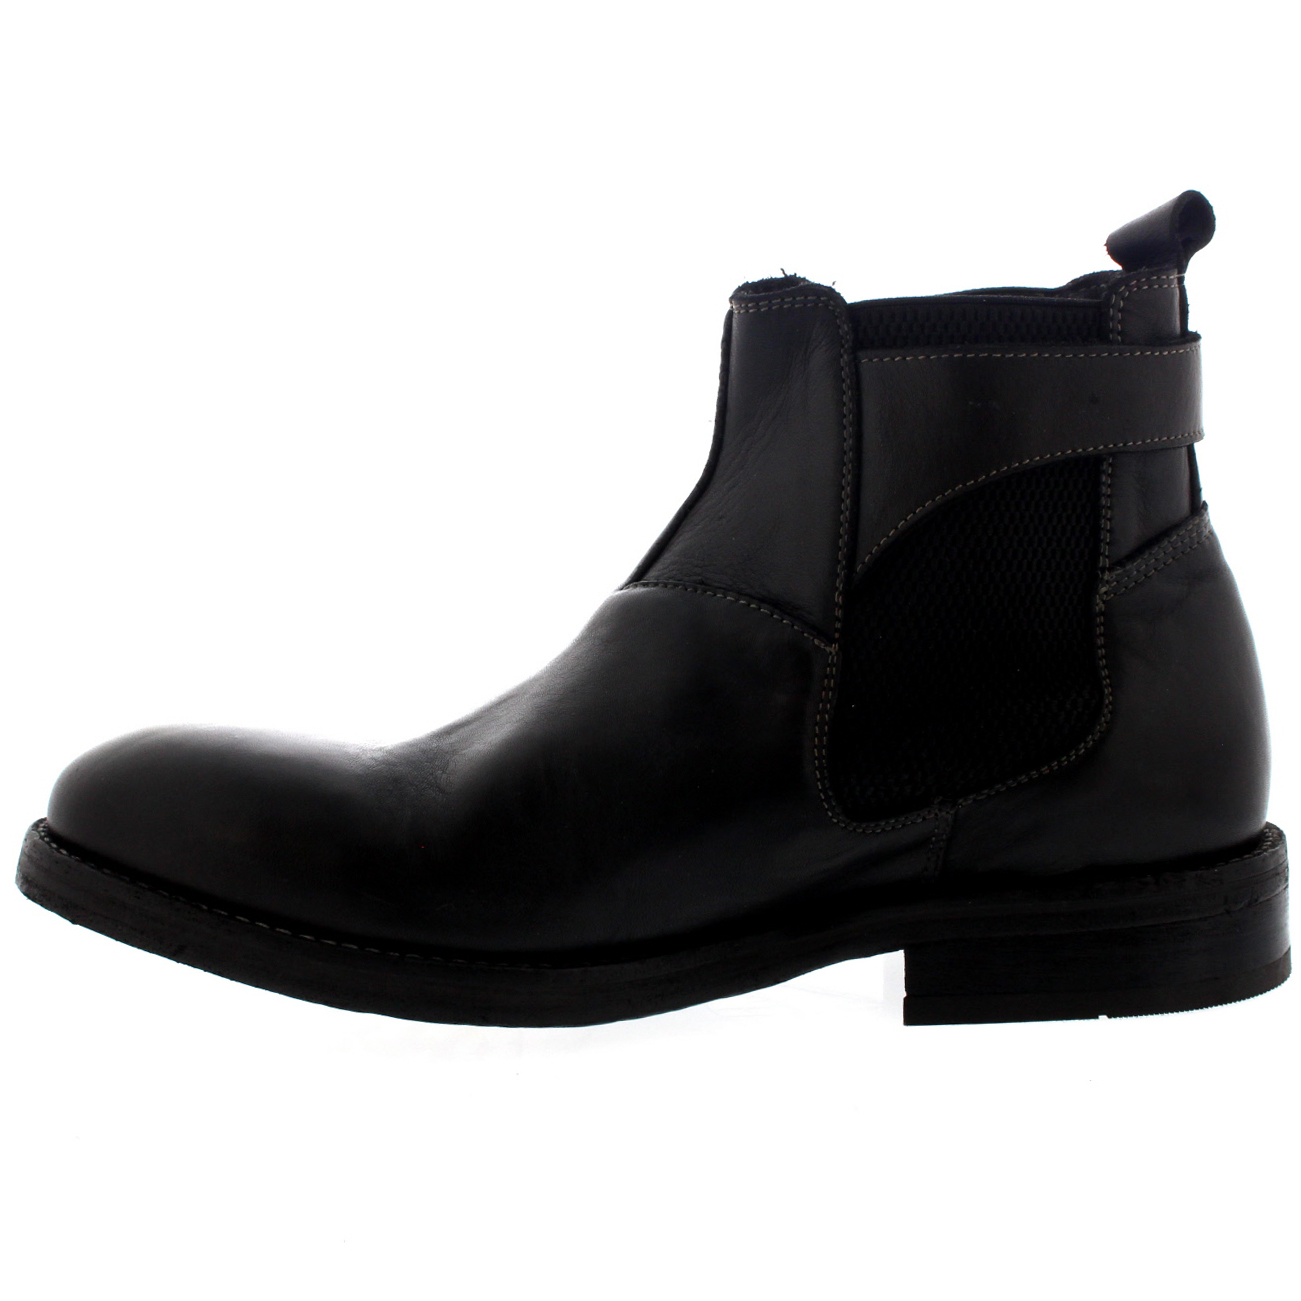 Mens H By Hudson Parson Leather Chelsea Boots Smart Work Office ... 2b5f2f0e71c